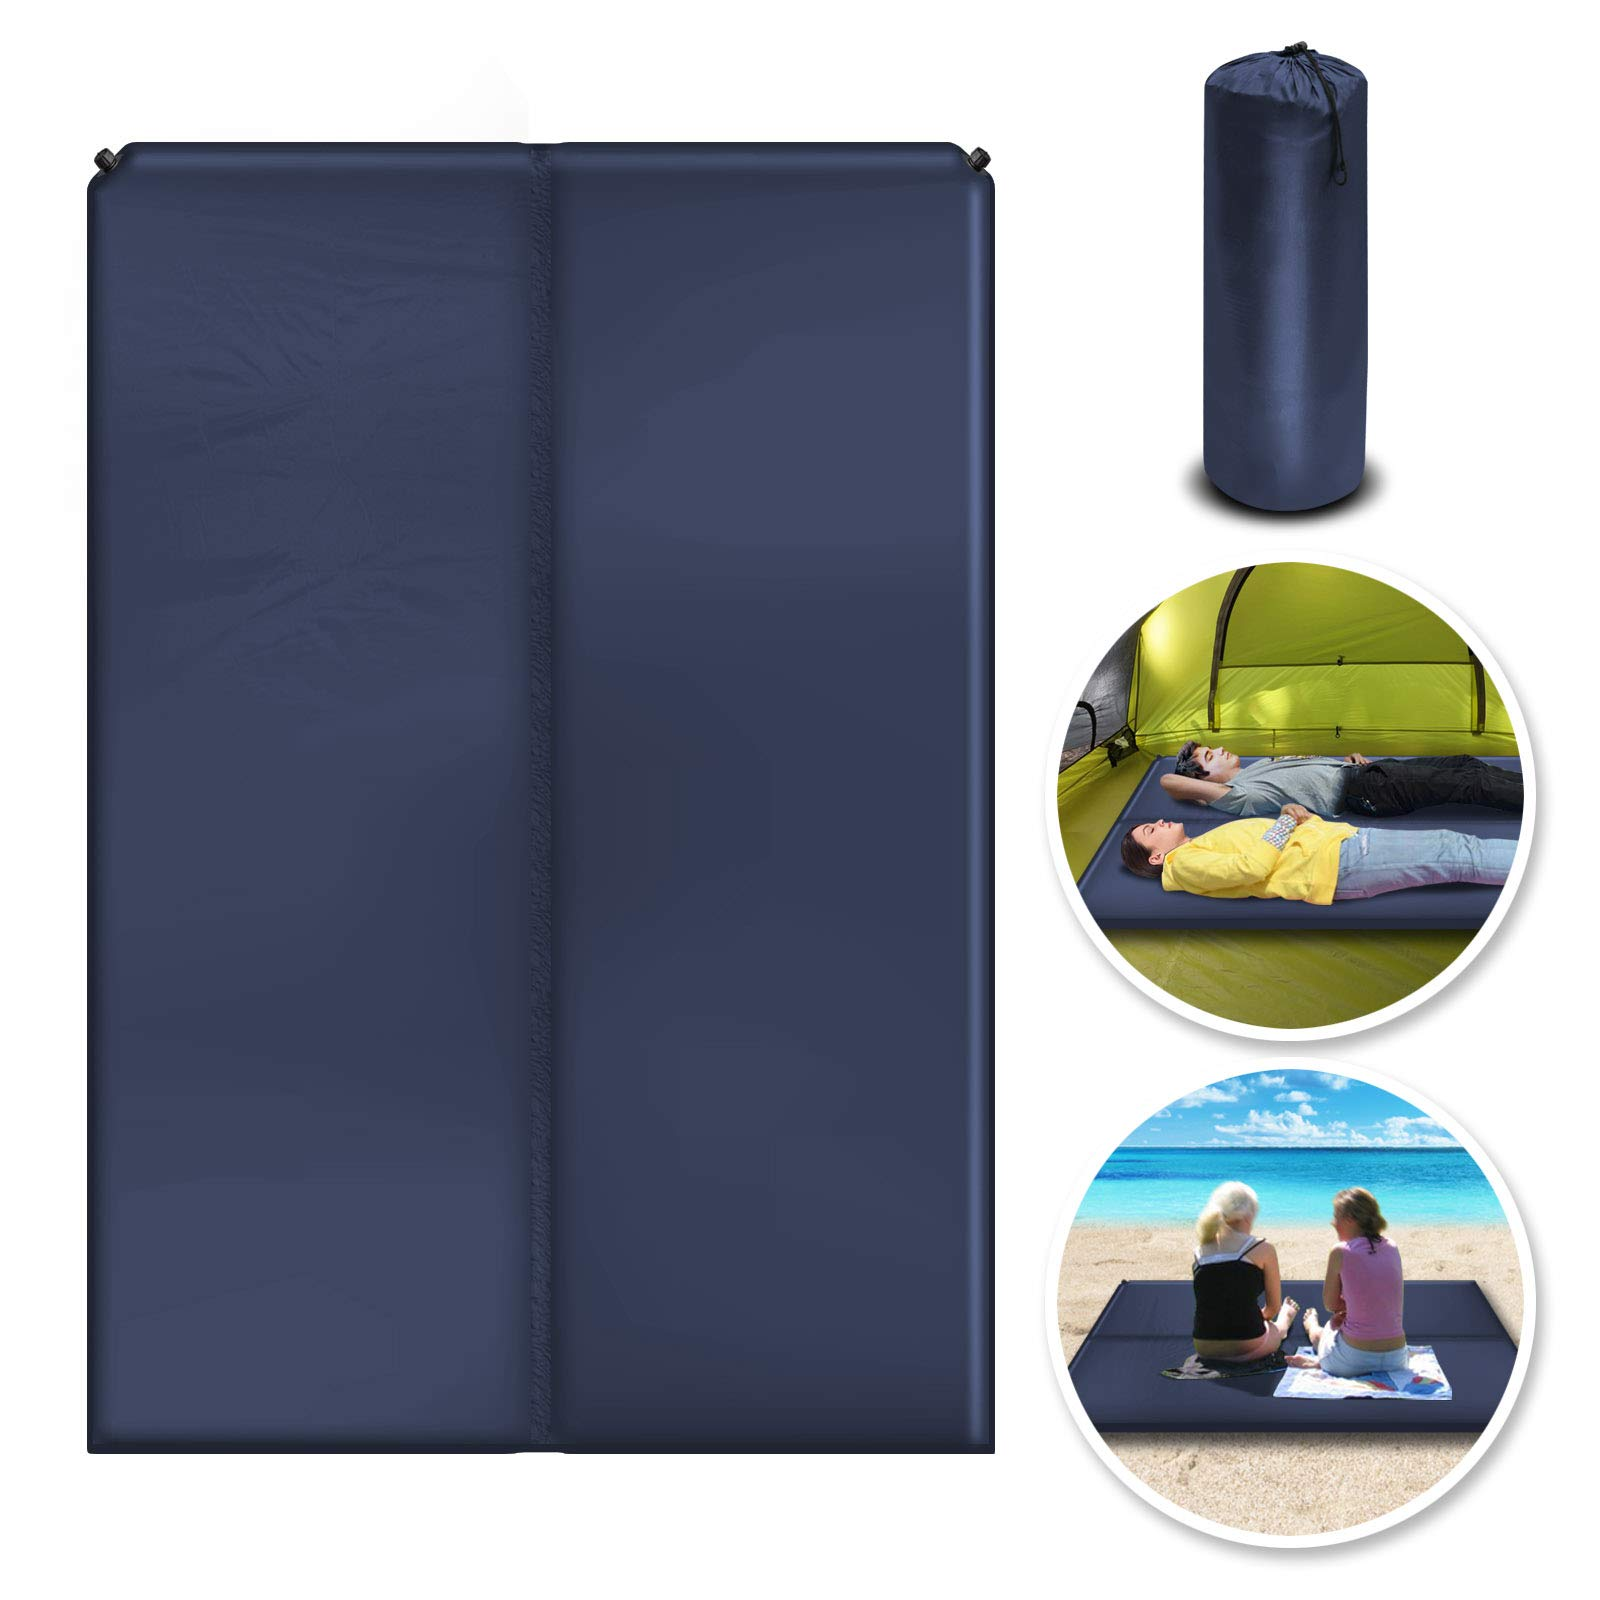 BenefitUSA Outdoor Folding Camping Mat Moistureproof Sleeping Bed 2 Person Mattress Cushion (Blue) by Benefit-USA